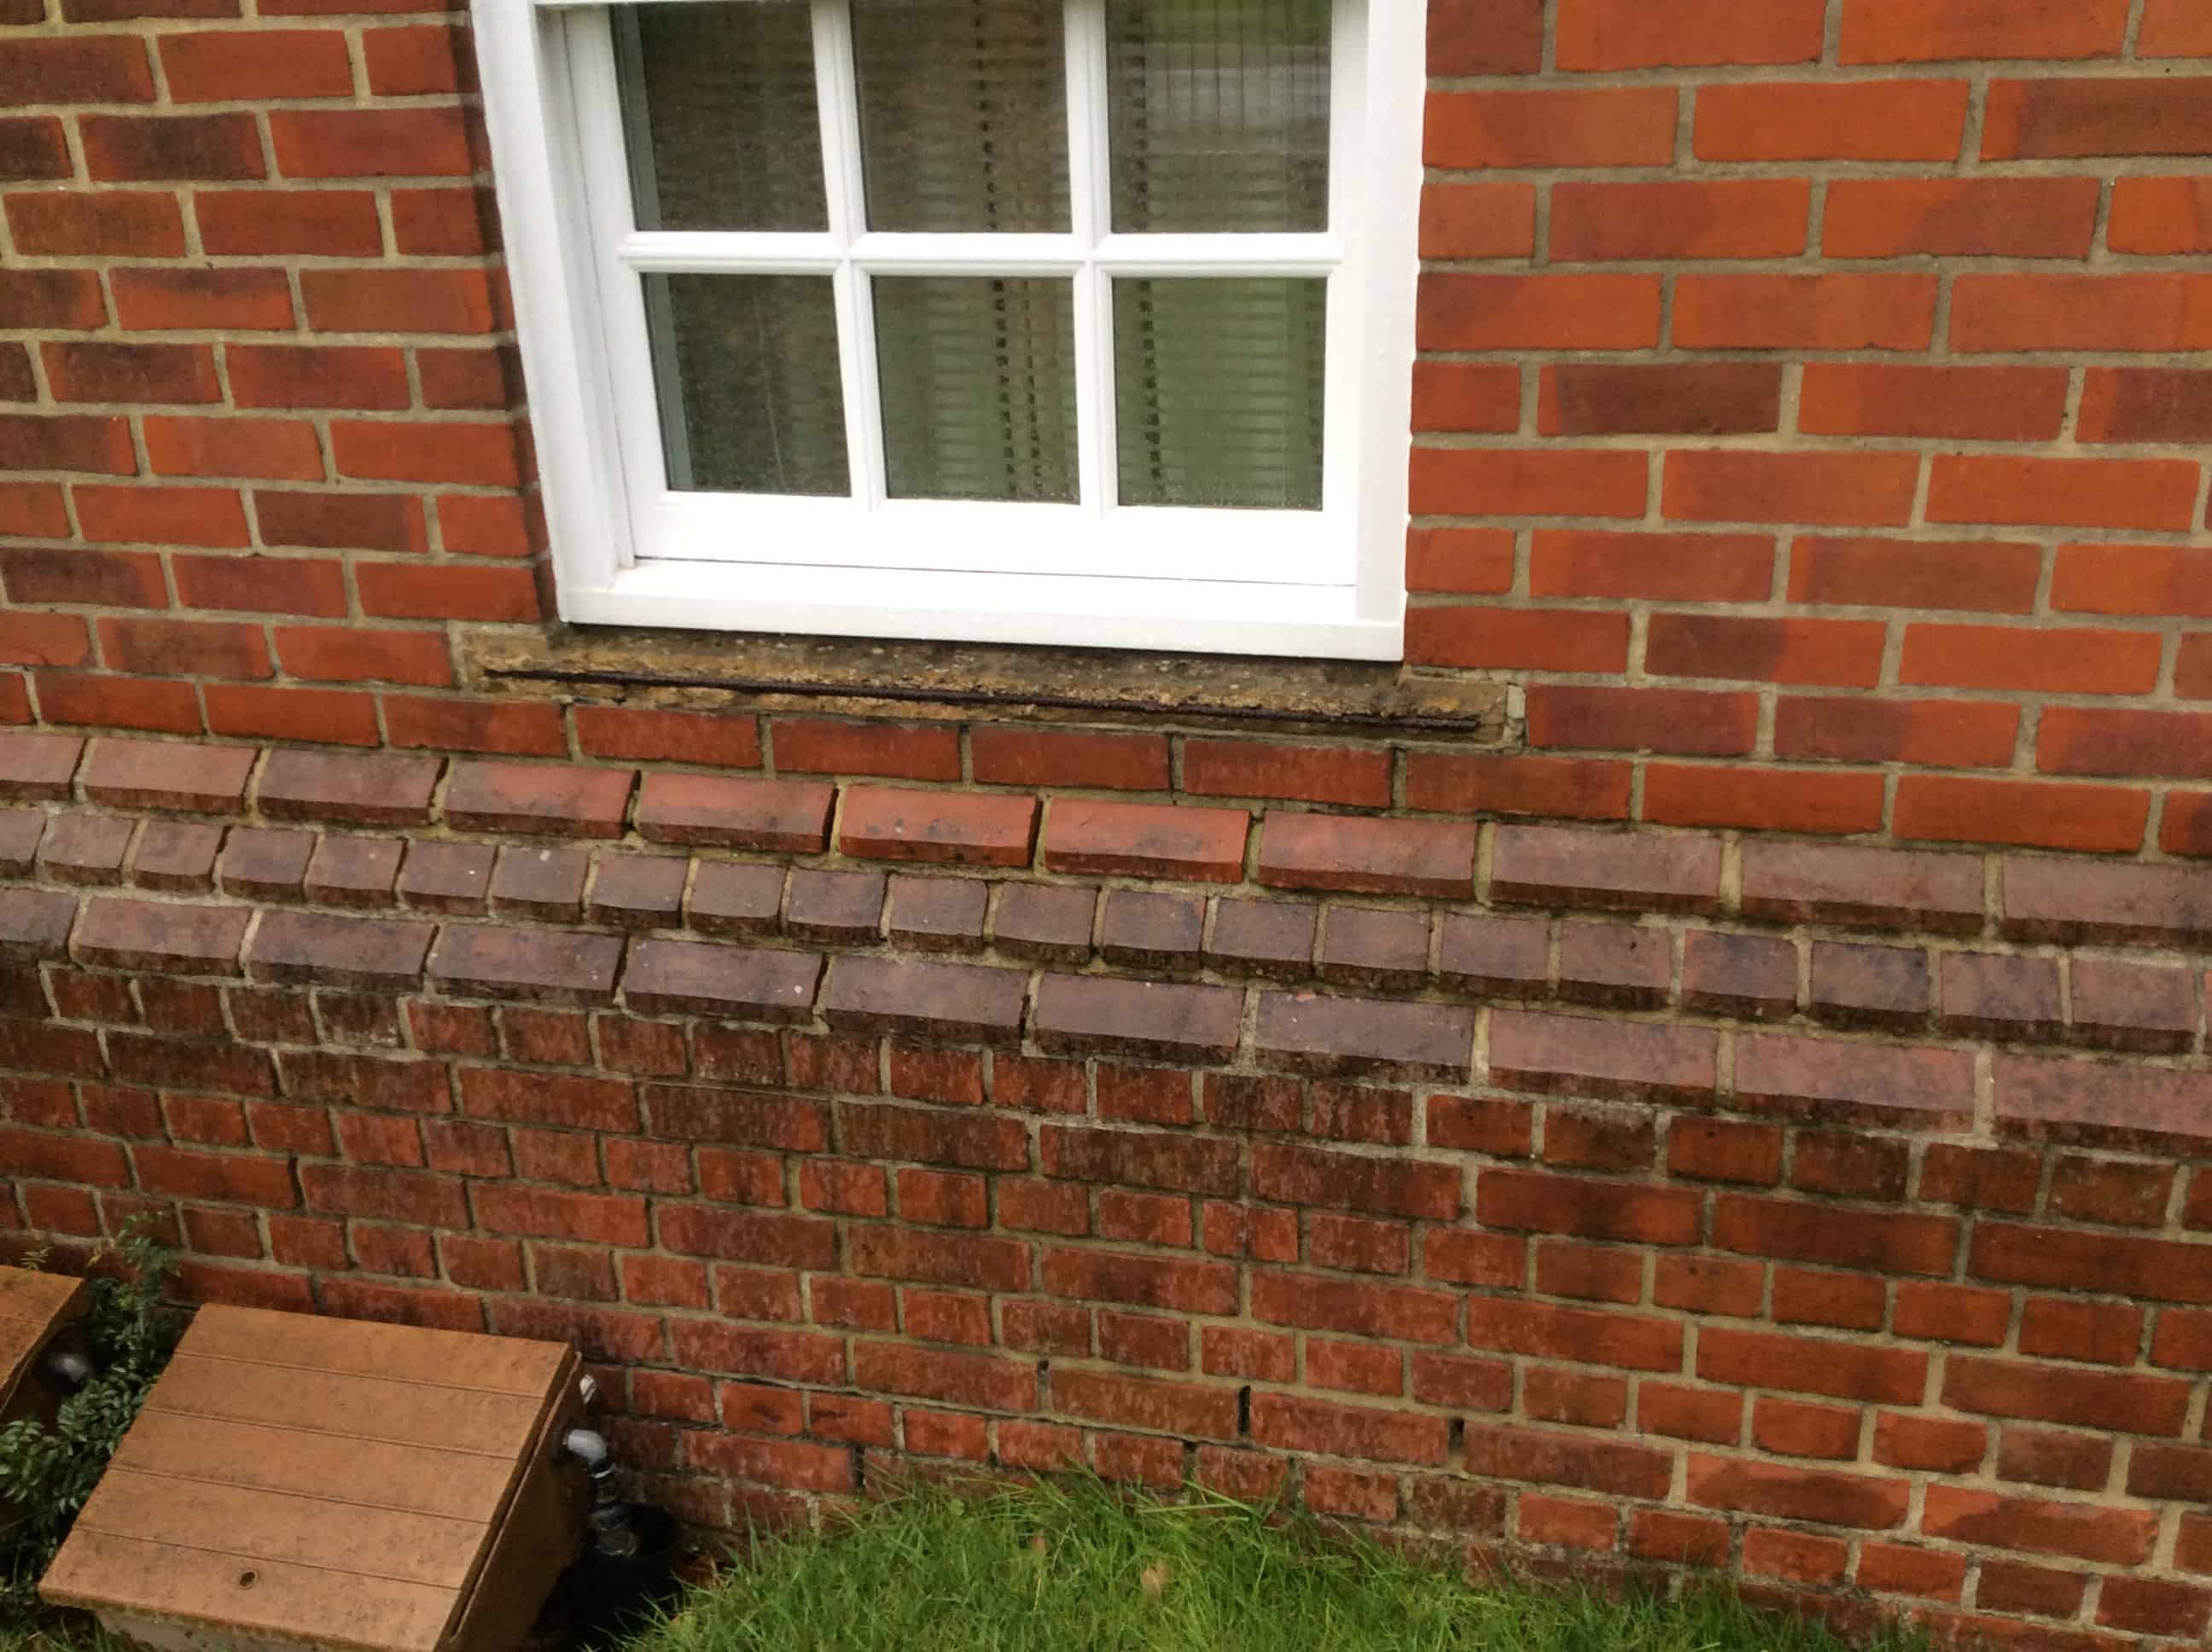 Concrete window sill repairs london structural repairs for Repairing concrete window sills exterior